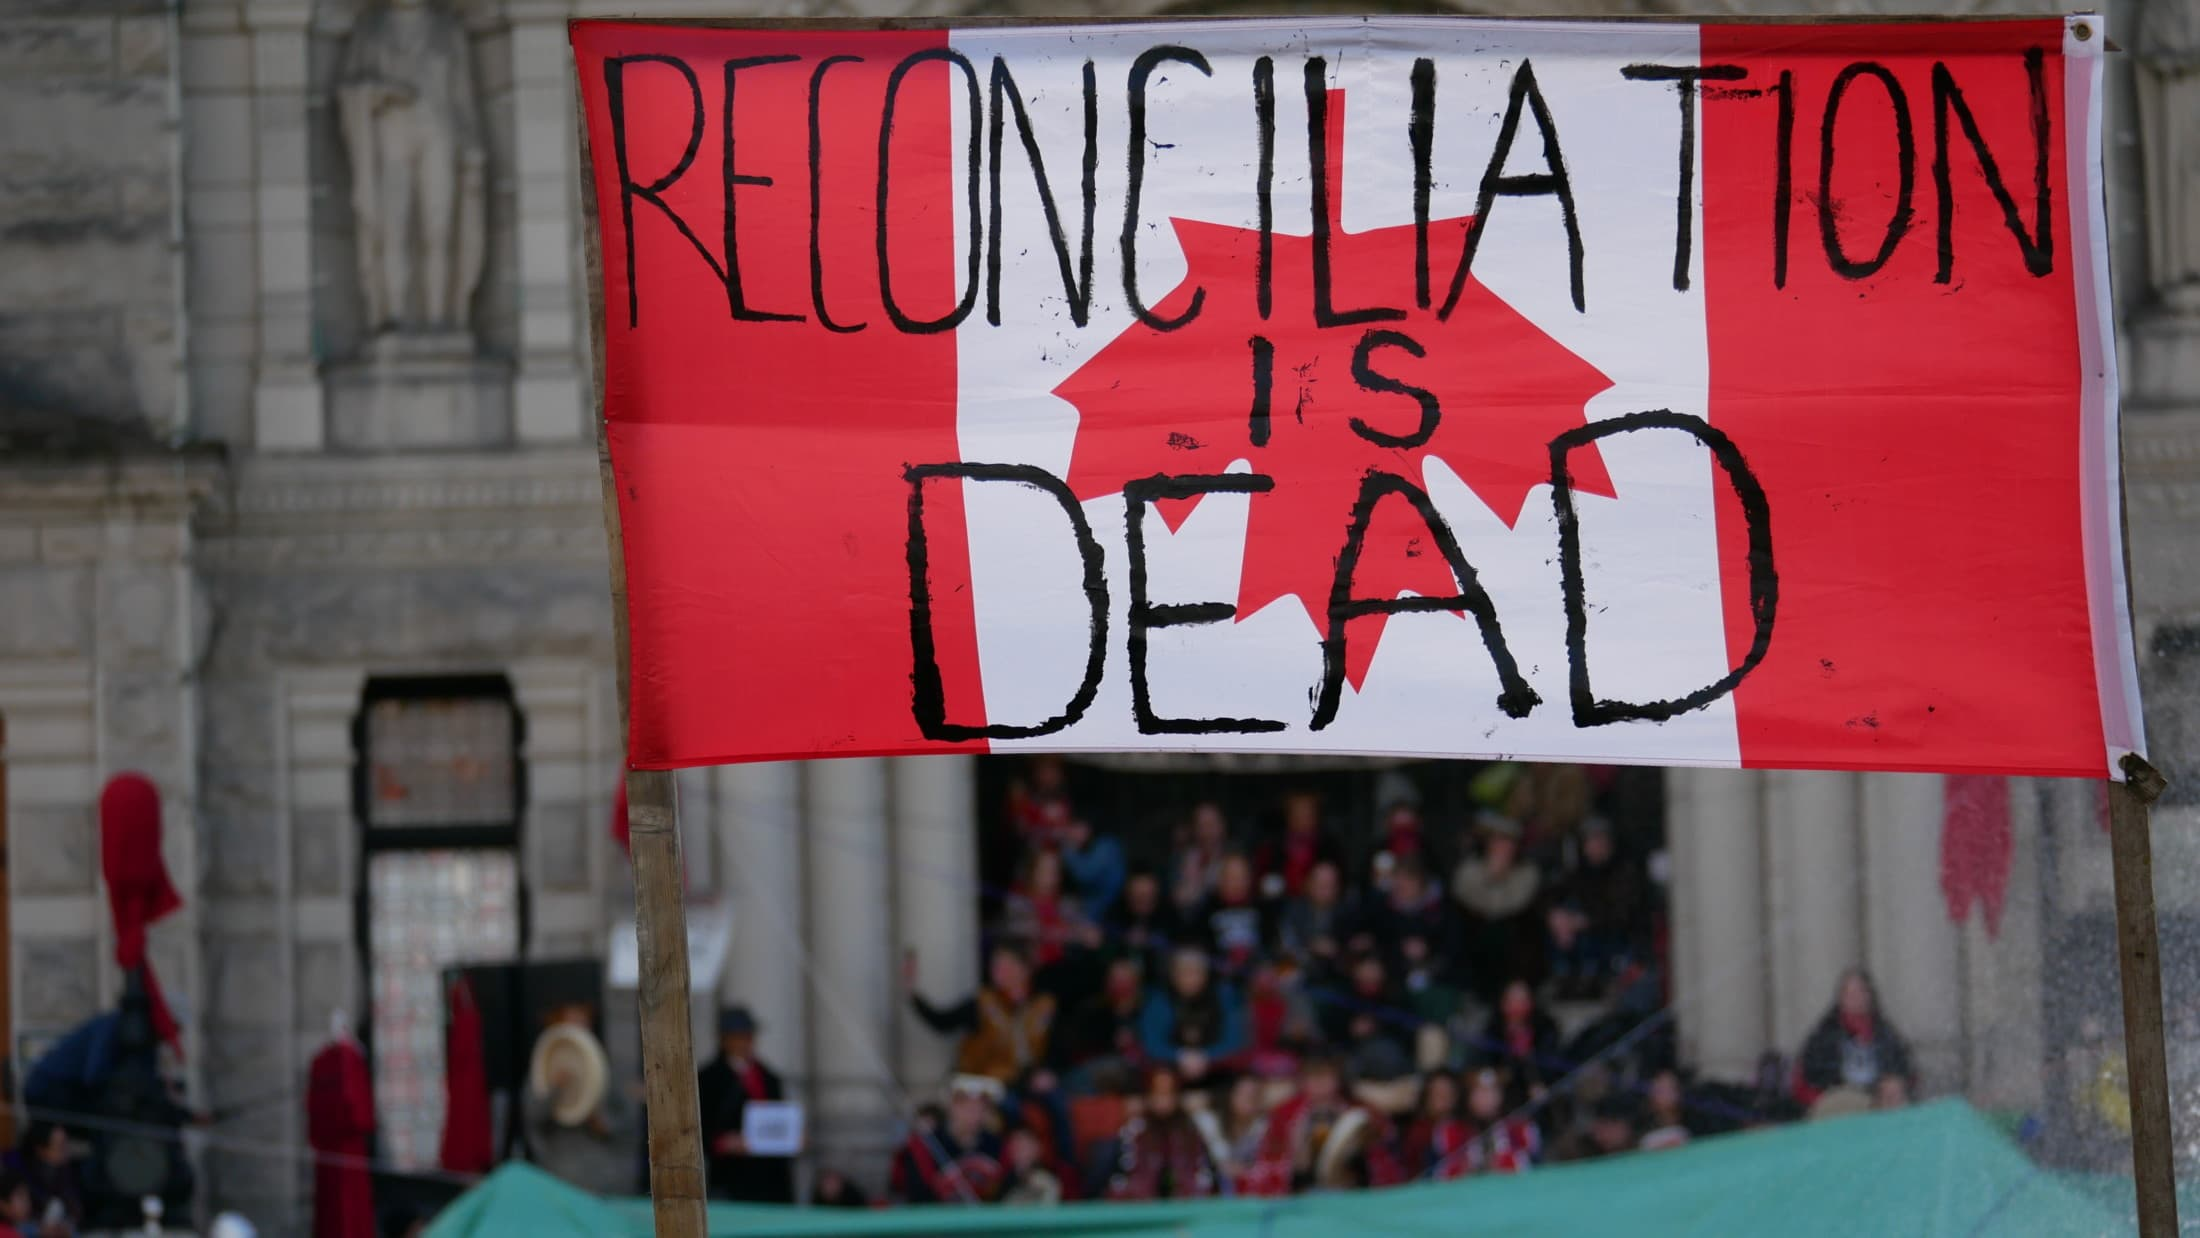 Reconciliation is dead sign BC Legislature Wet'suwet'en solidarity action